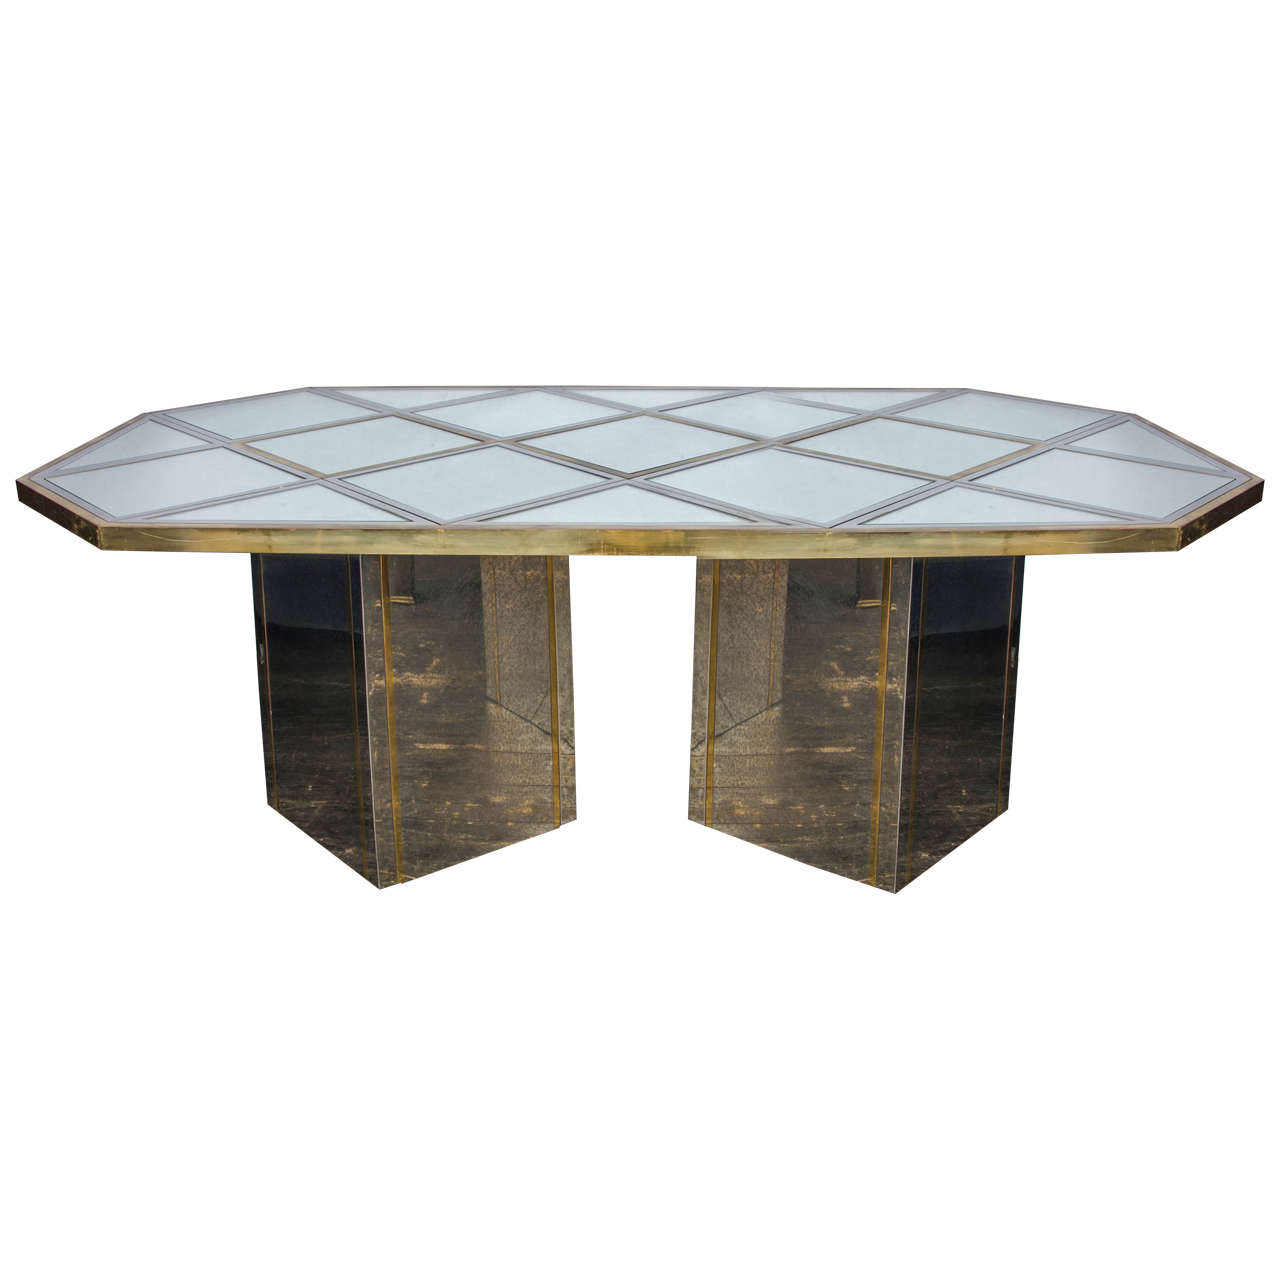 1960s italian unusual large dining table for sale at 1stdibs for Unusual dining tables for sale